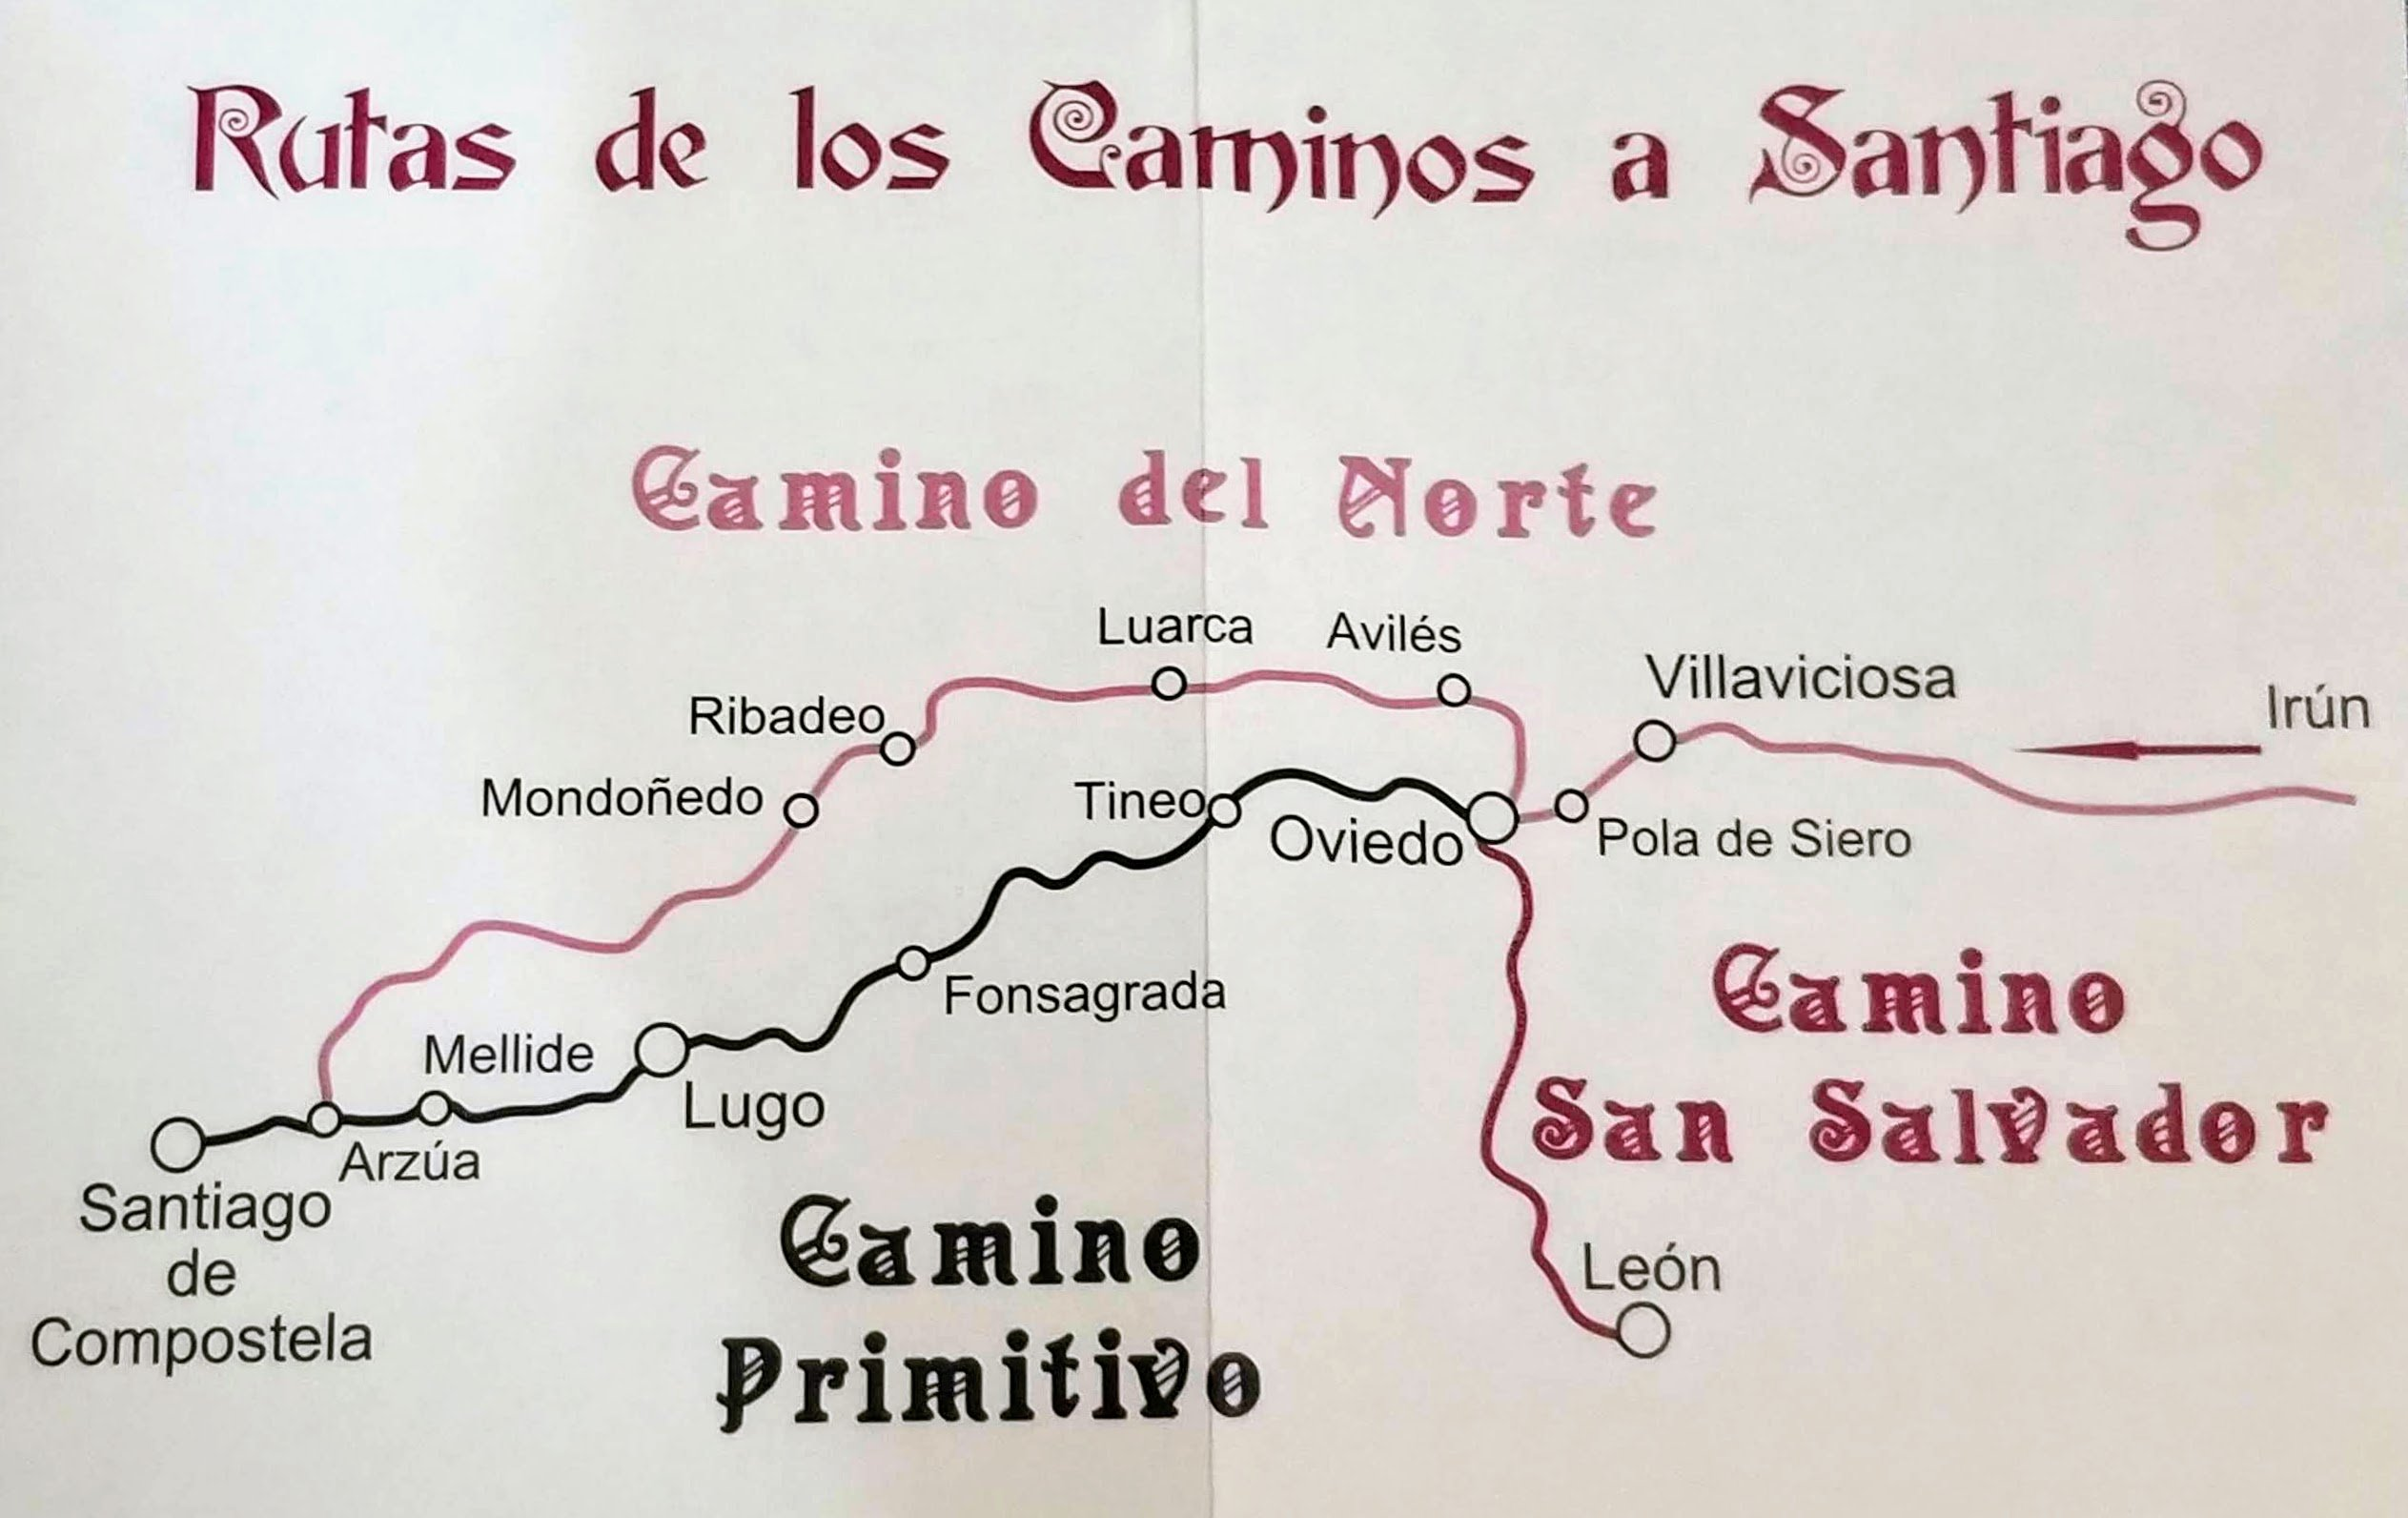 Caminos del Norte from the San Salvador Credential